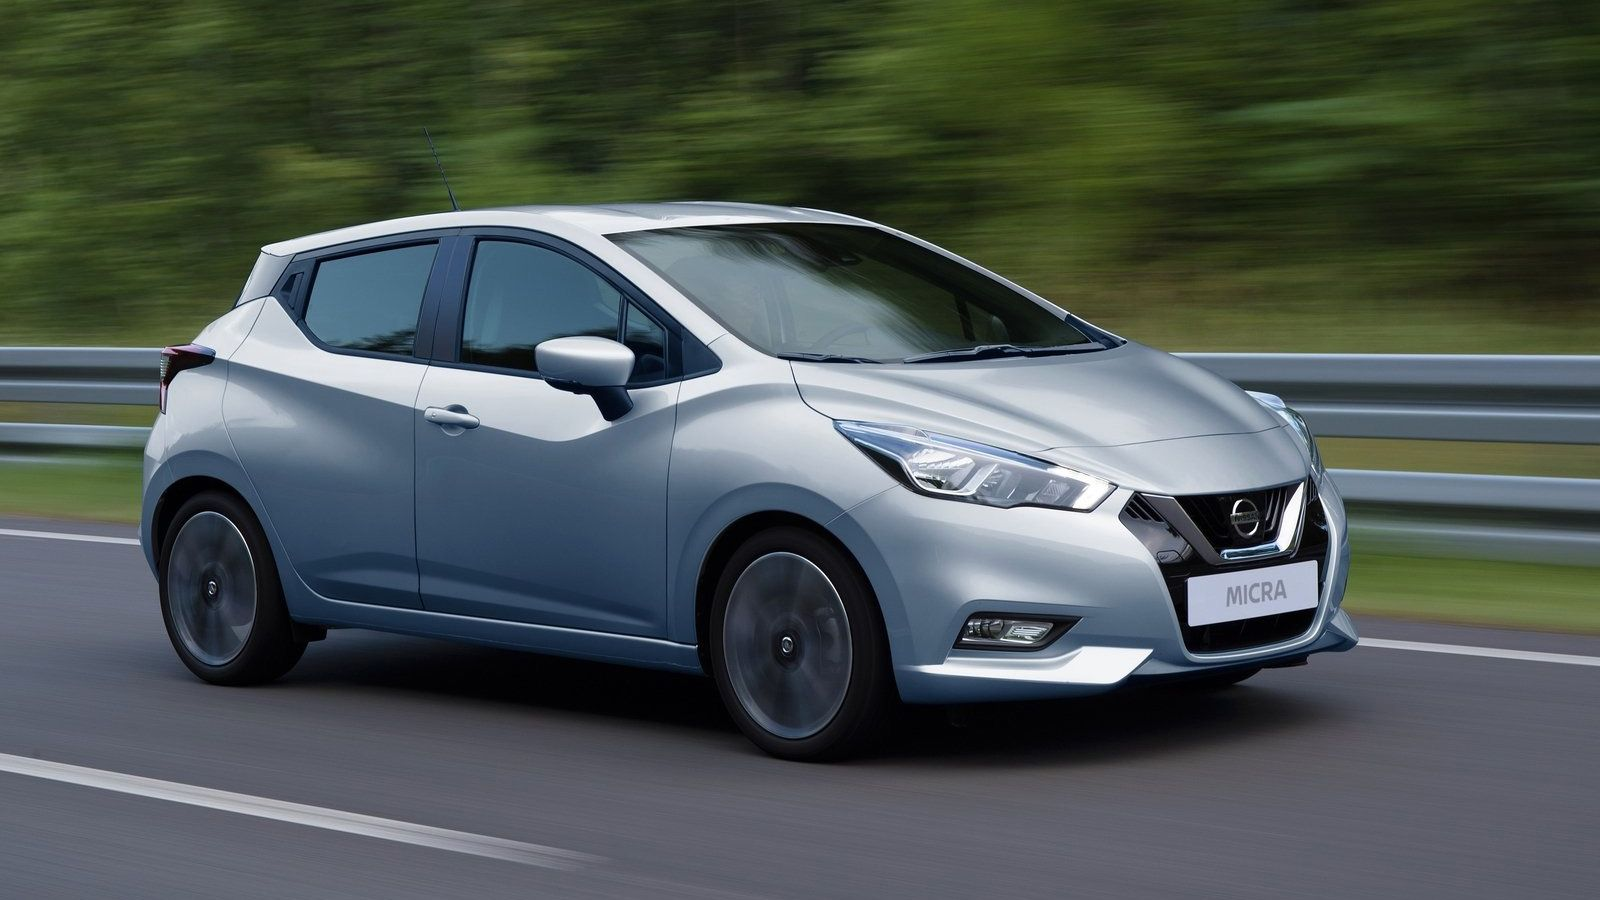 2017 Nissan Micra Visit Indianautosblog Com For More Automotive News Nissan Upcoming Cars New Cars